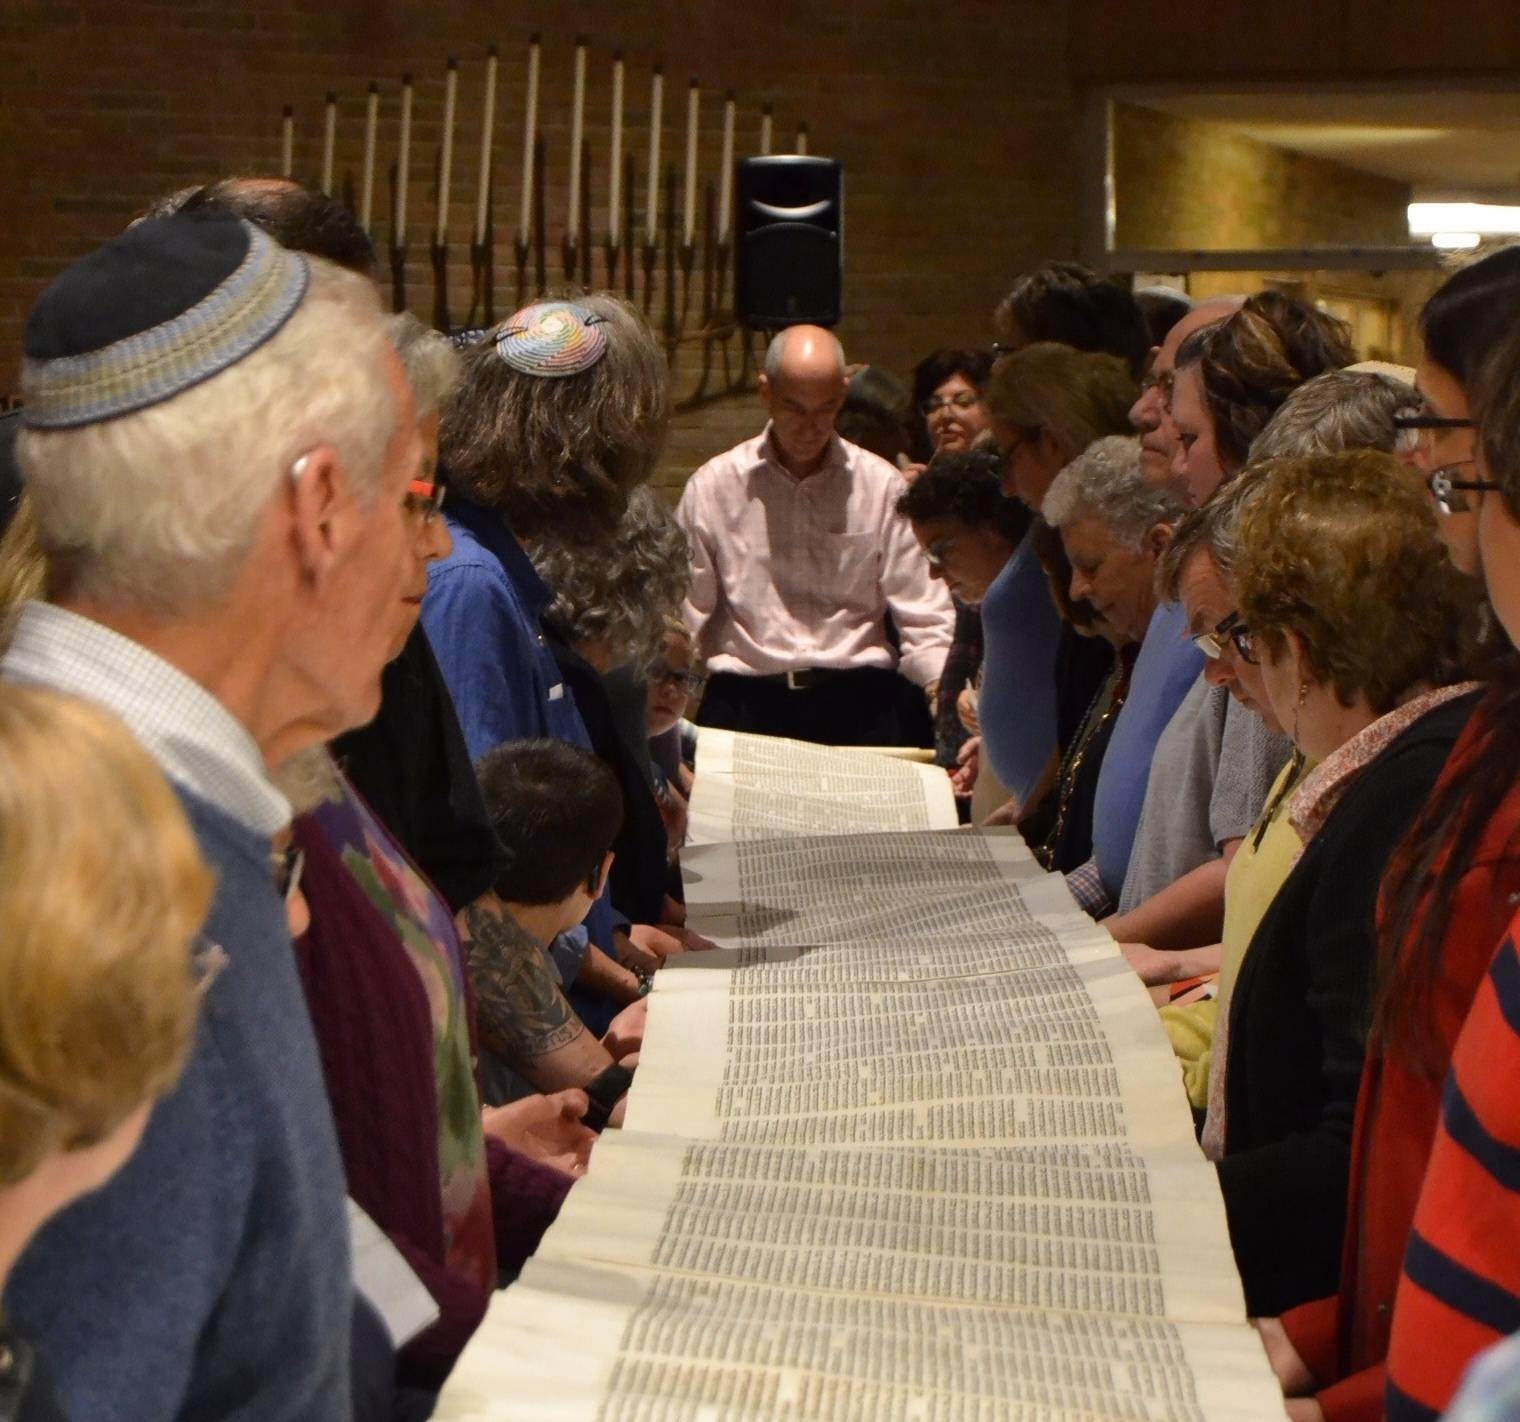 "<a href=""https://www.suburbantemple.org/open-doors.html"""">